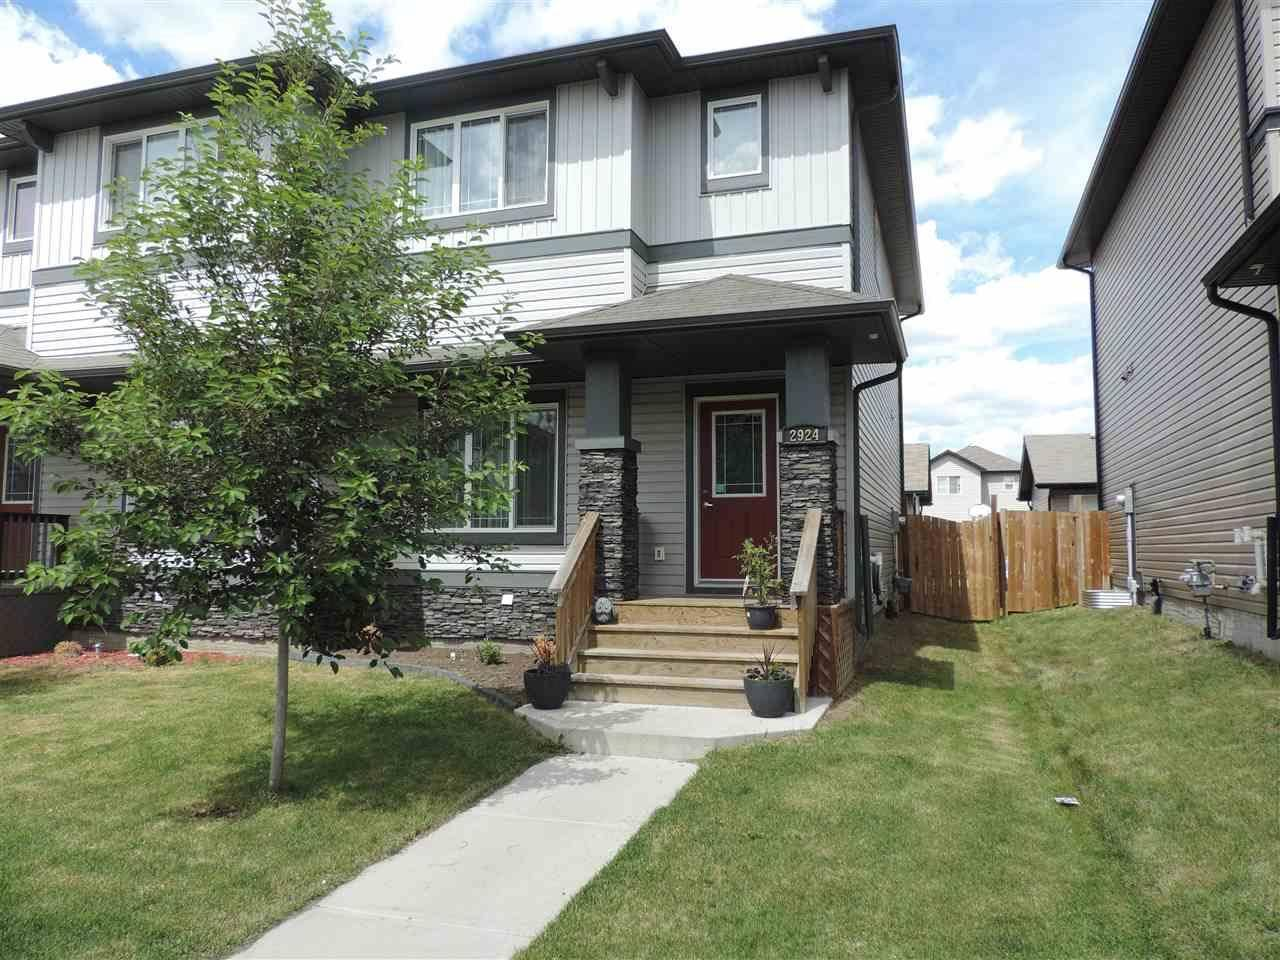 Townhouse for sale at 2924 17 Ave Nw Edmonton Alberta - MLS: E4162160